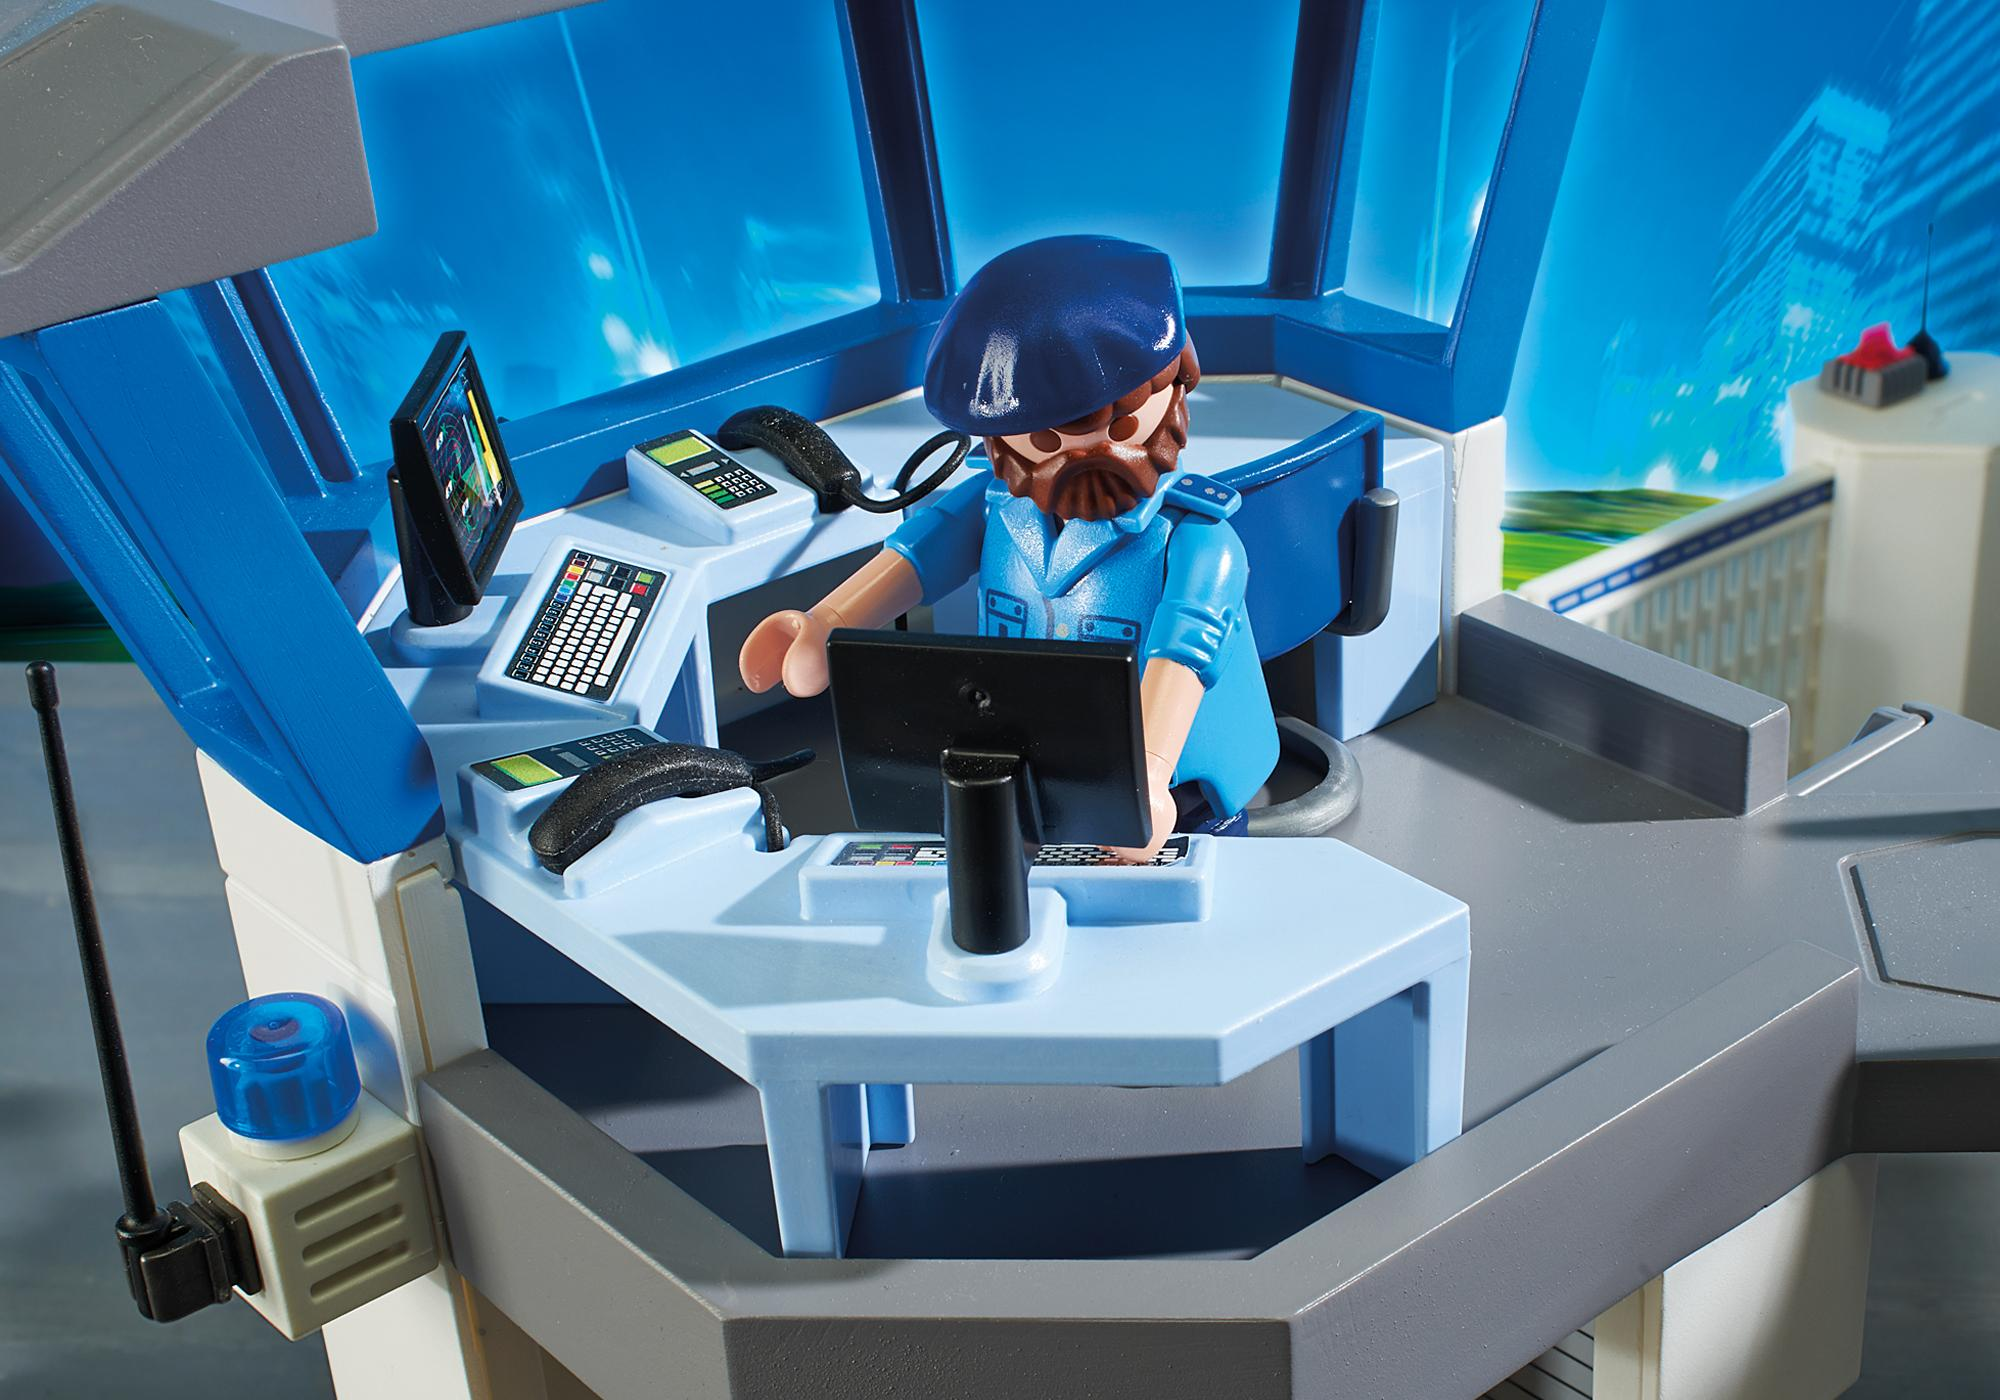 http://media.playmobil.com/i/playmobil/6919_product_extra5/Police Headquarters with Prison